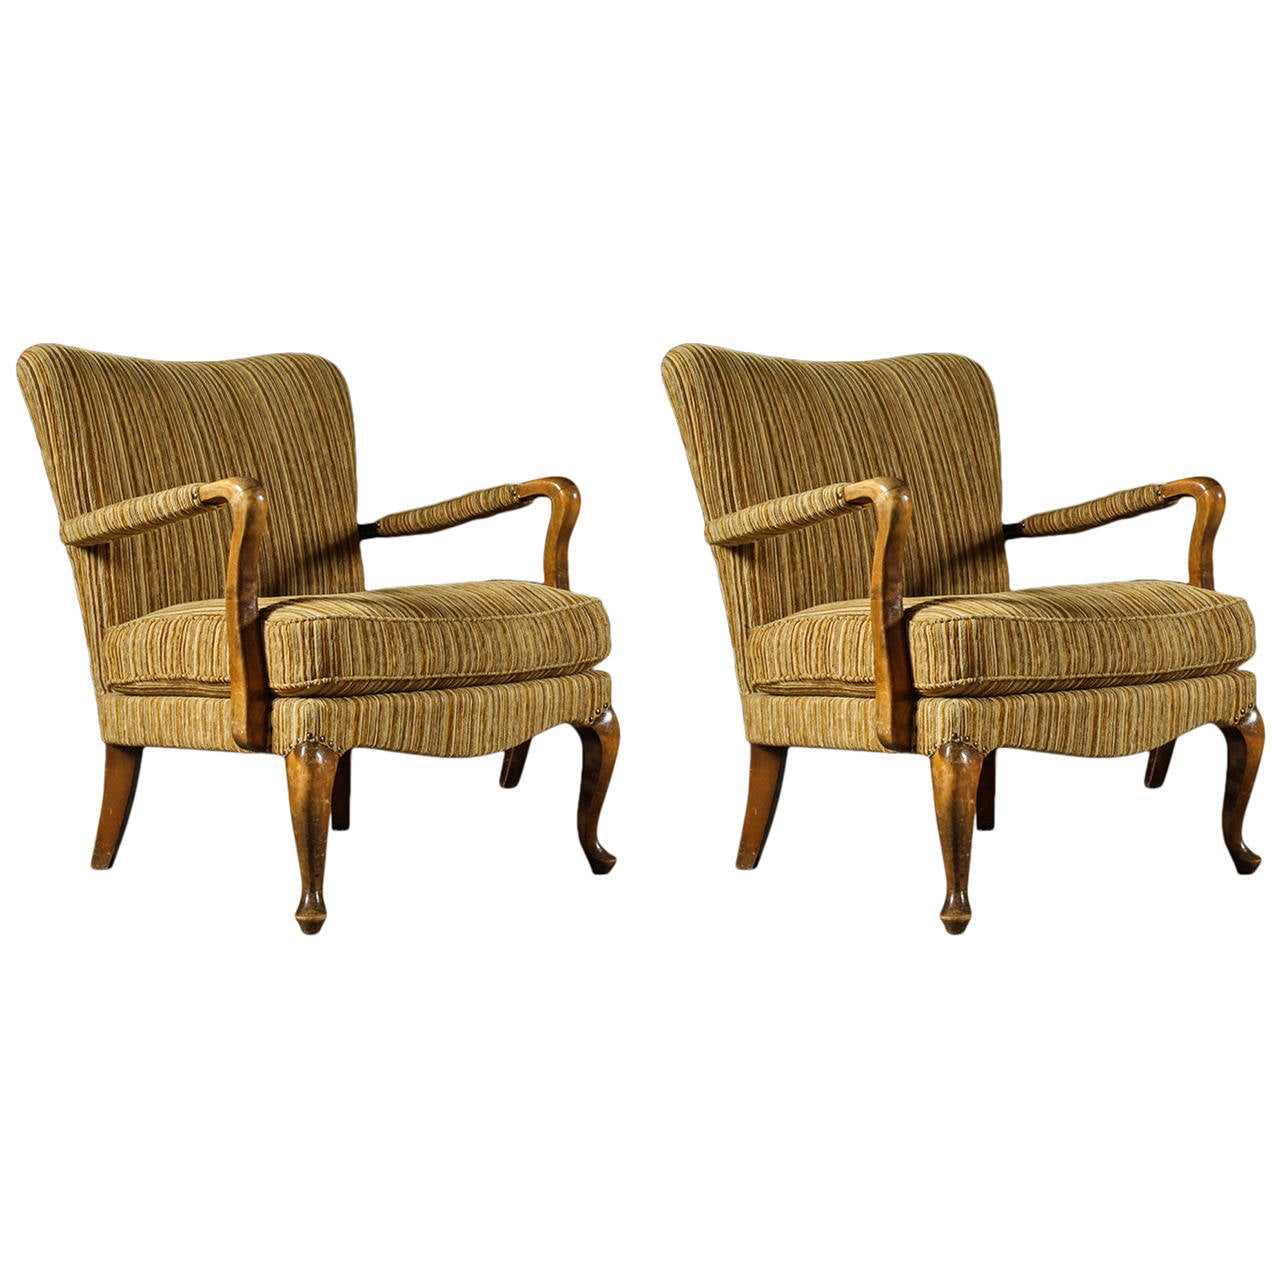 Pair of Danish 1940s Armchairs in the English Taste